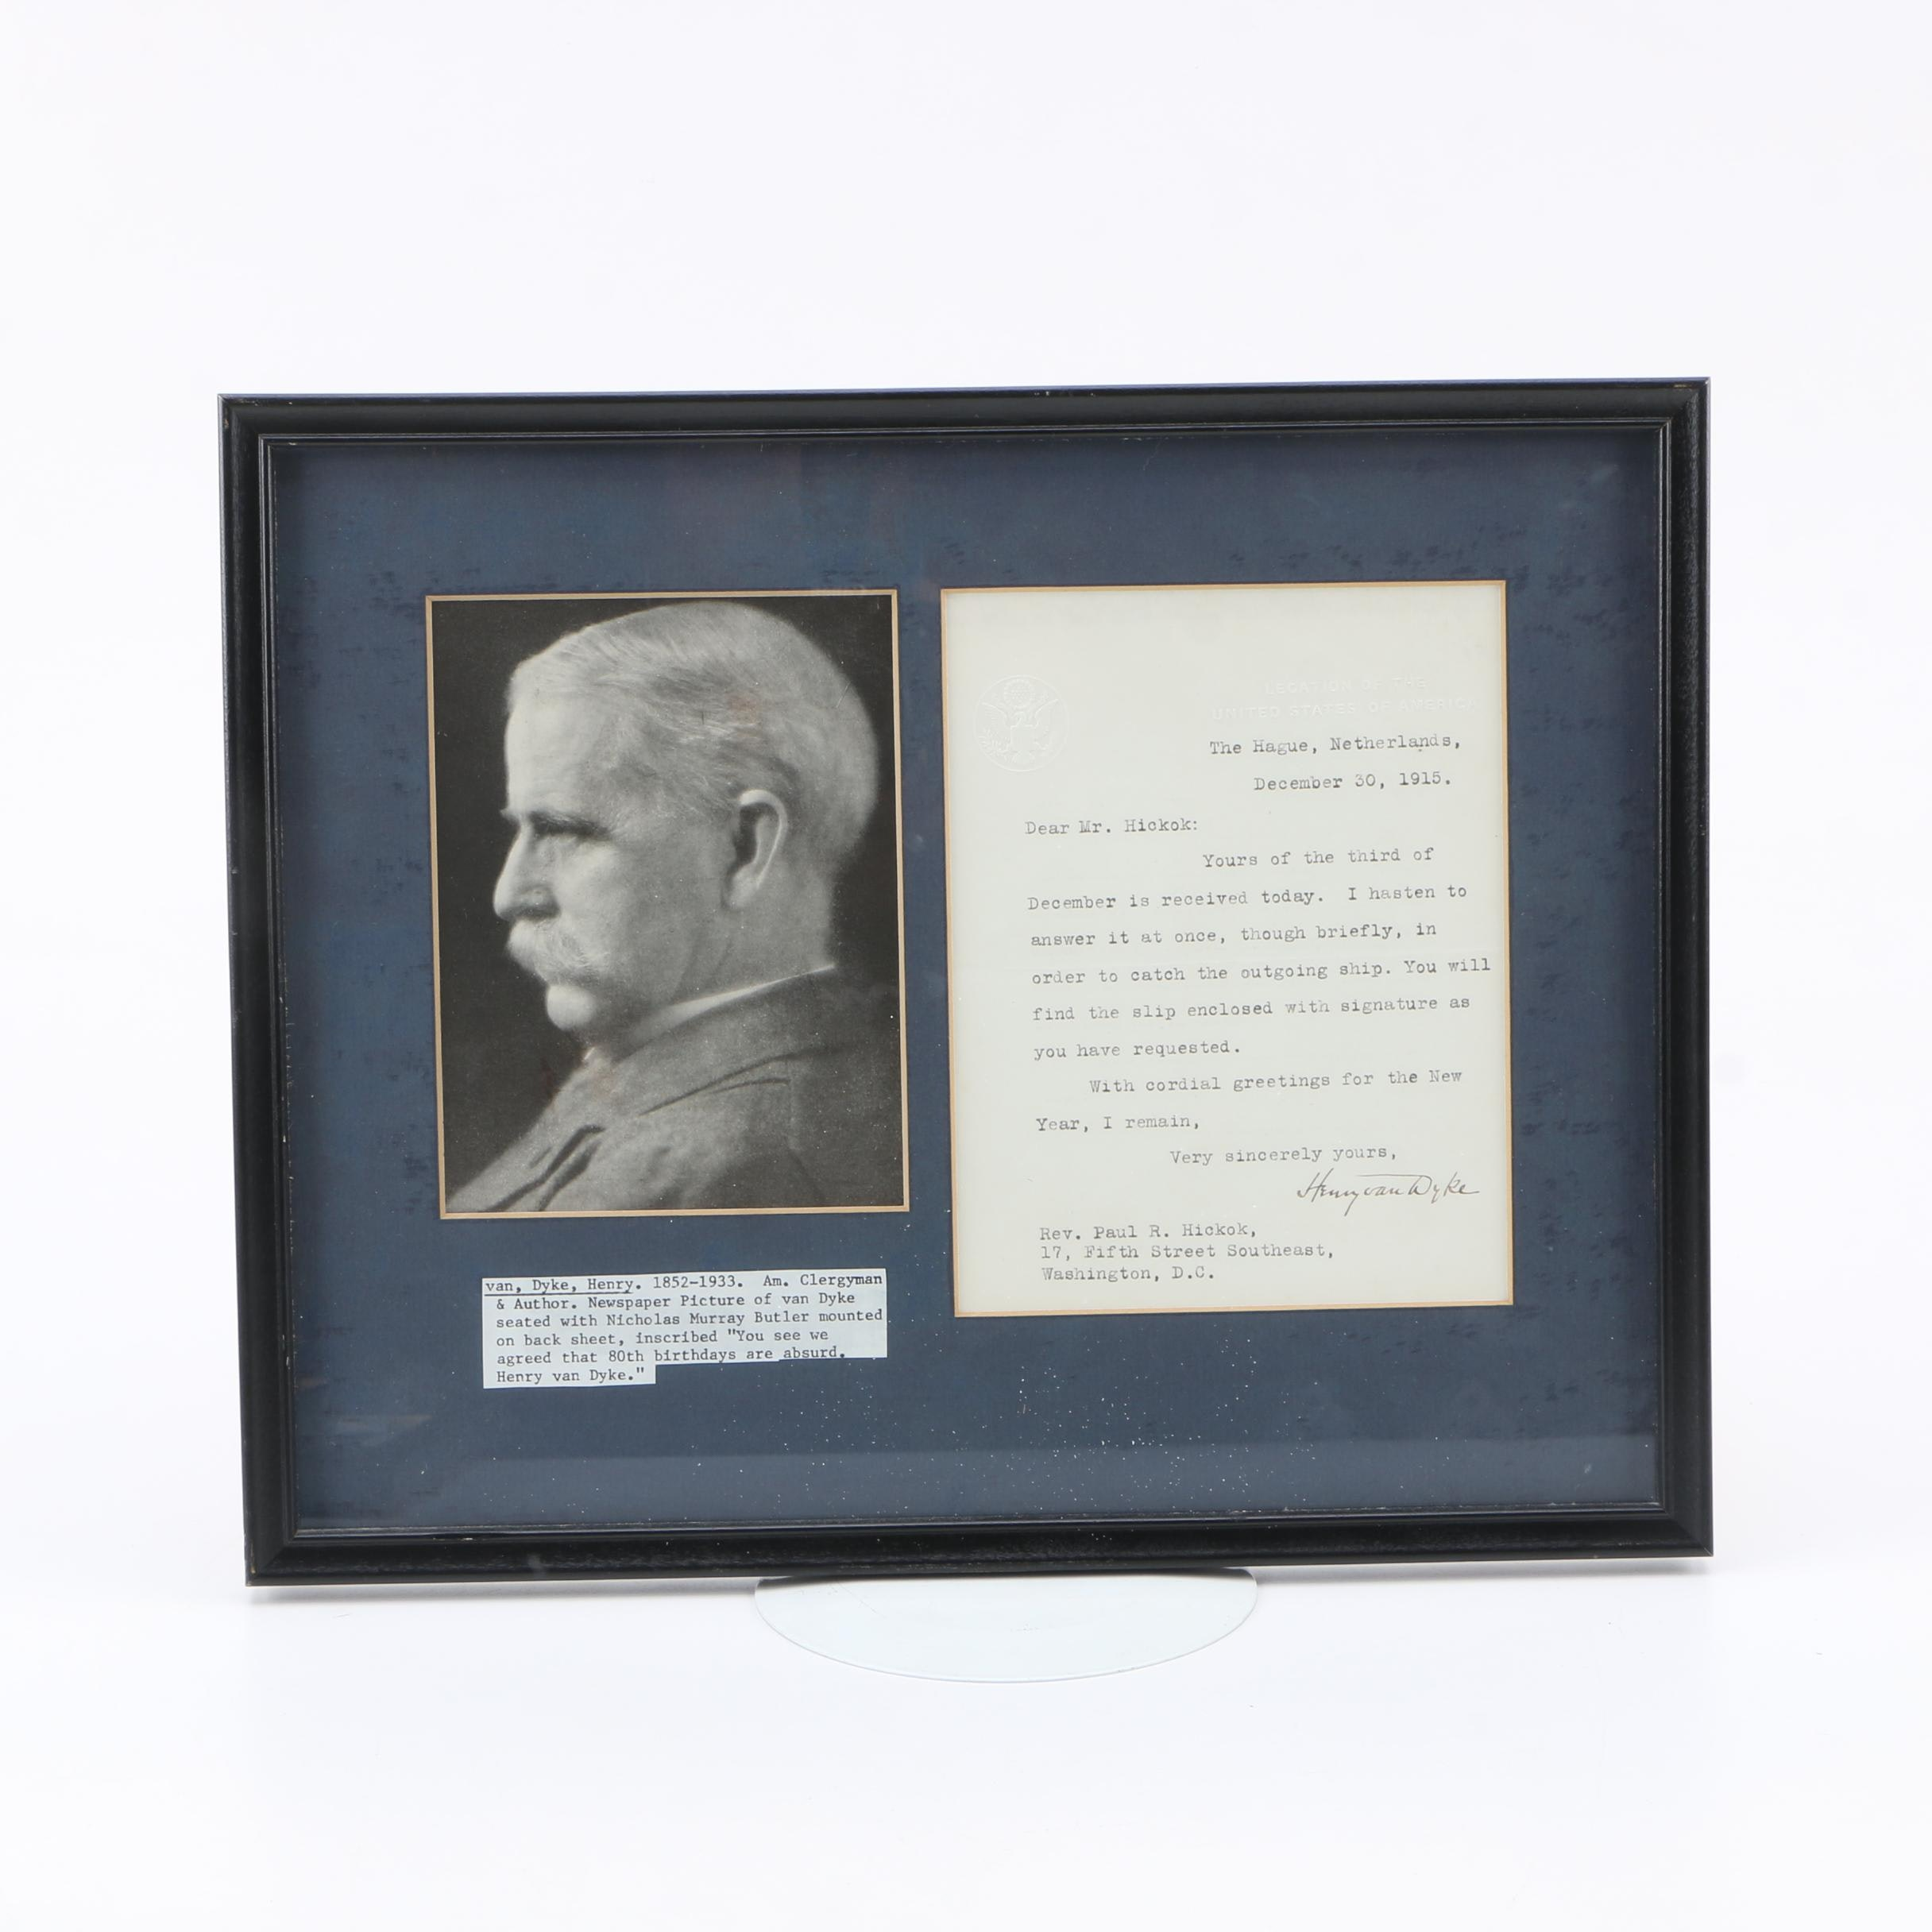 Henry van Dyke Typed Letter Signed December 30, 1915